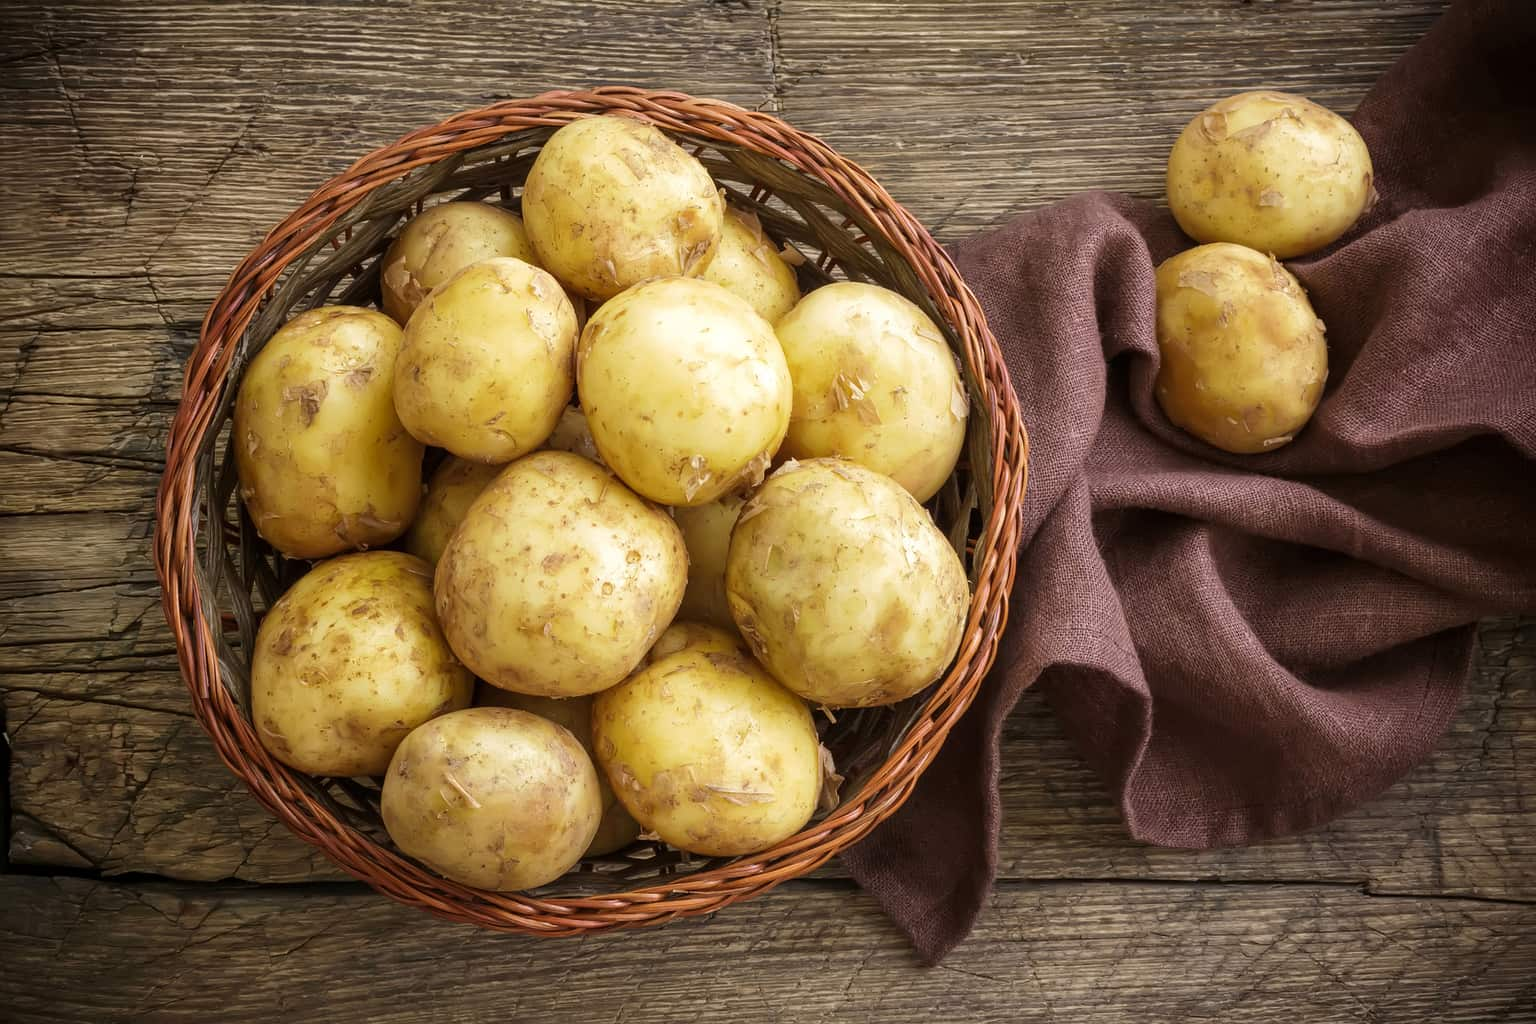 Are you going to try the potato diet?